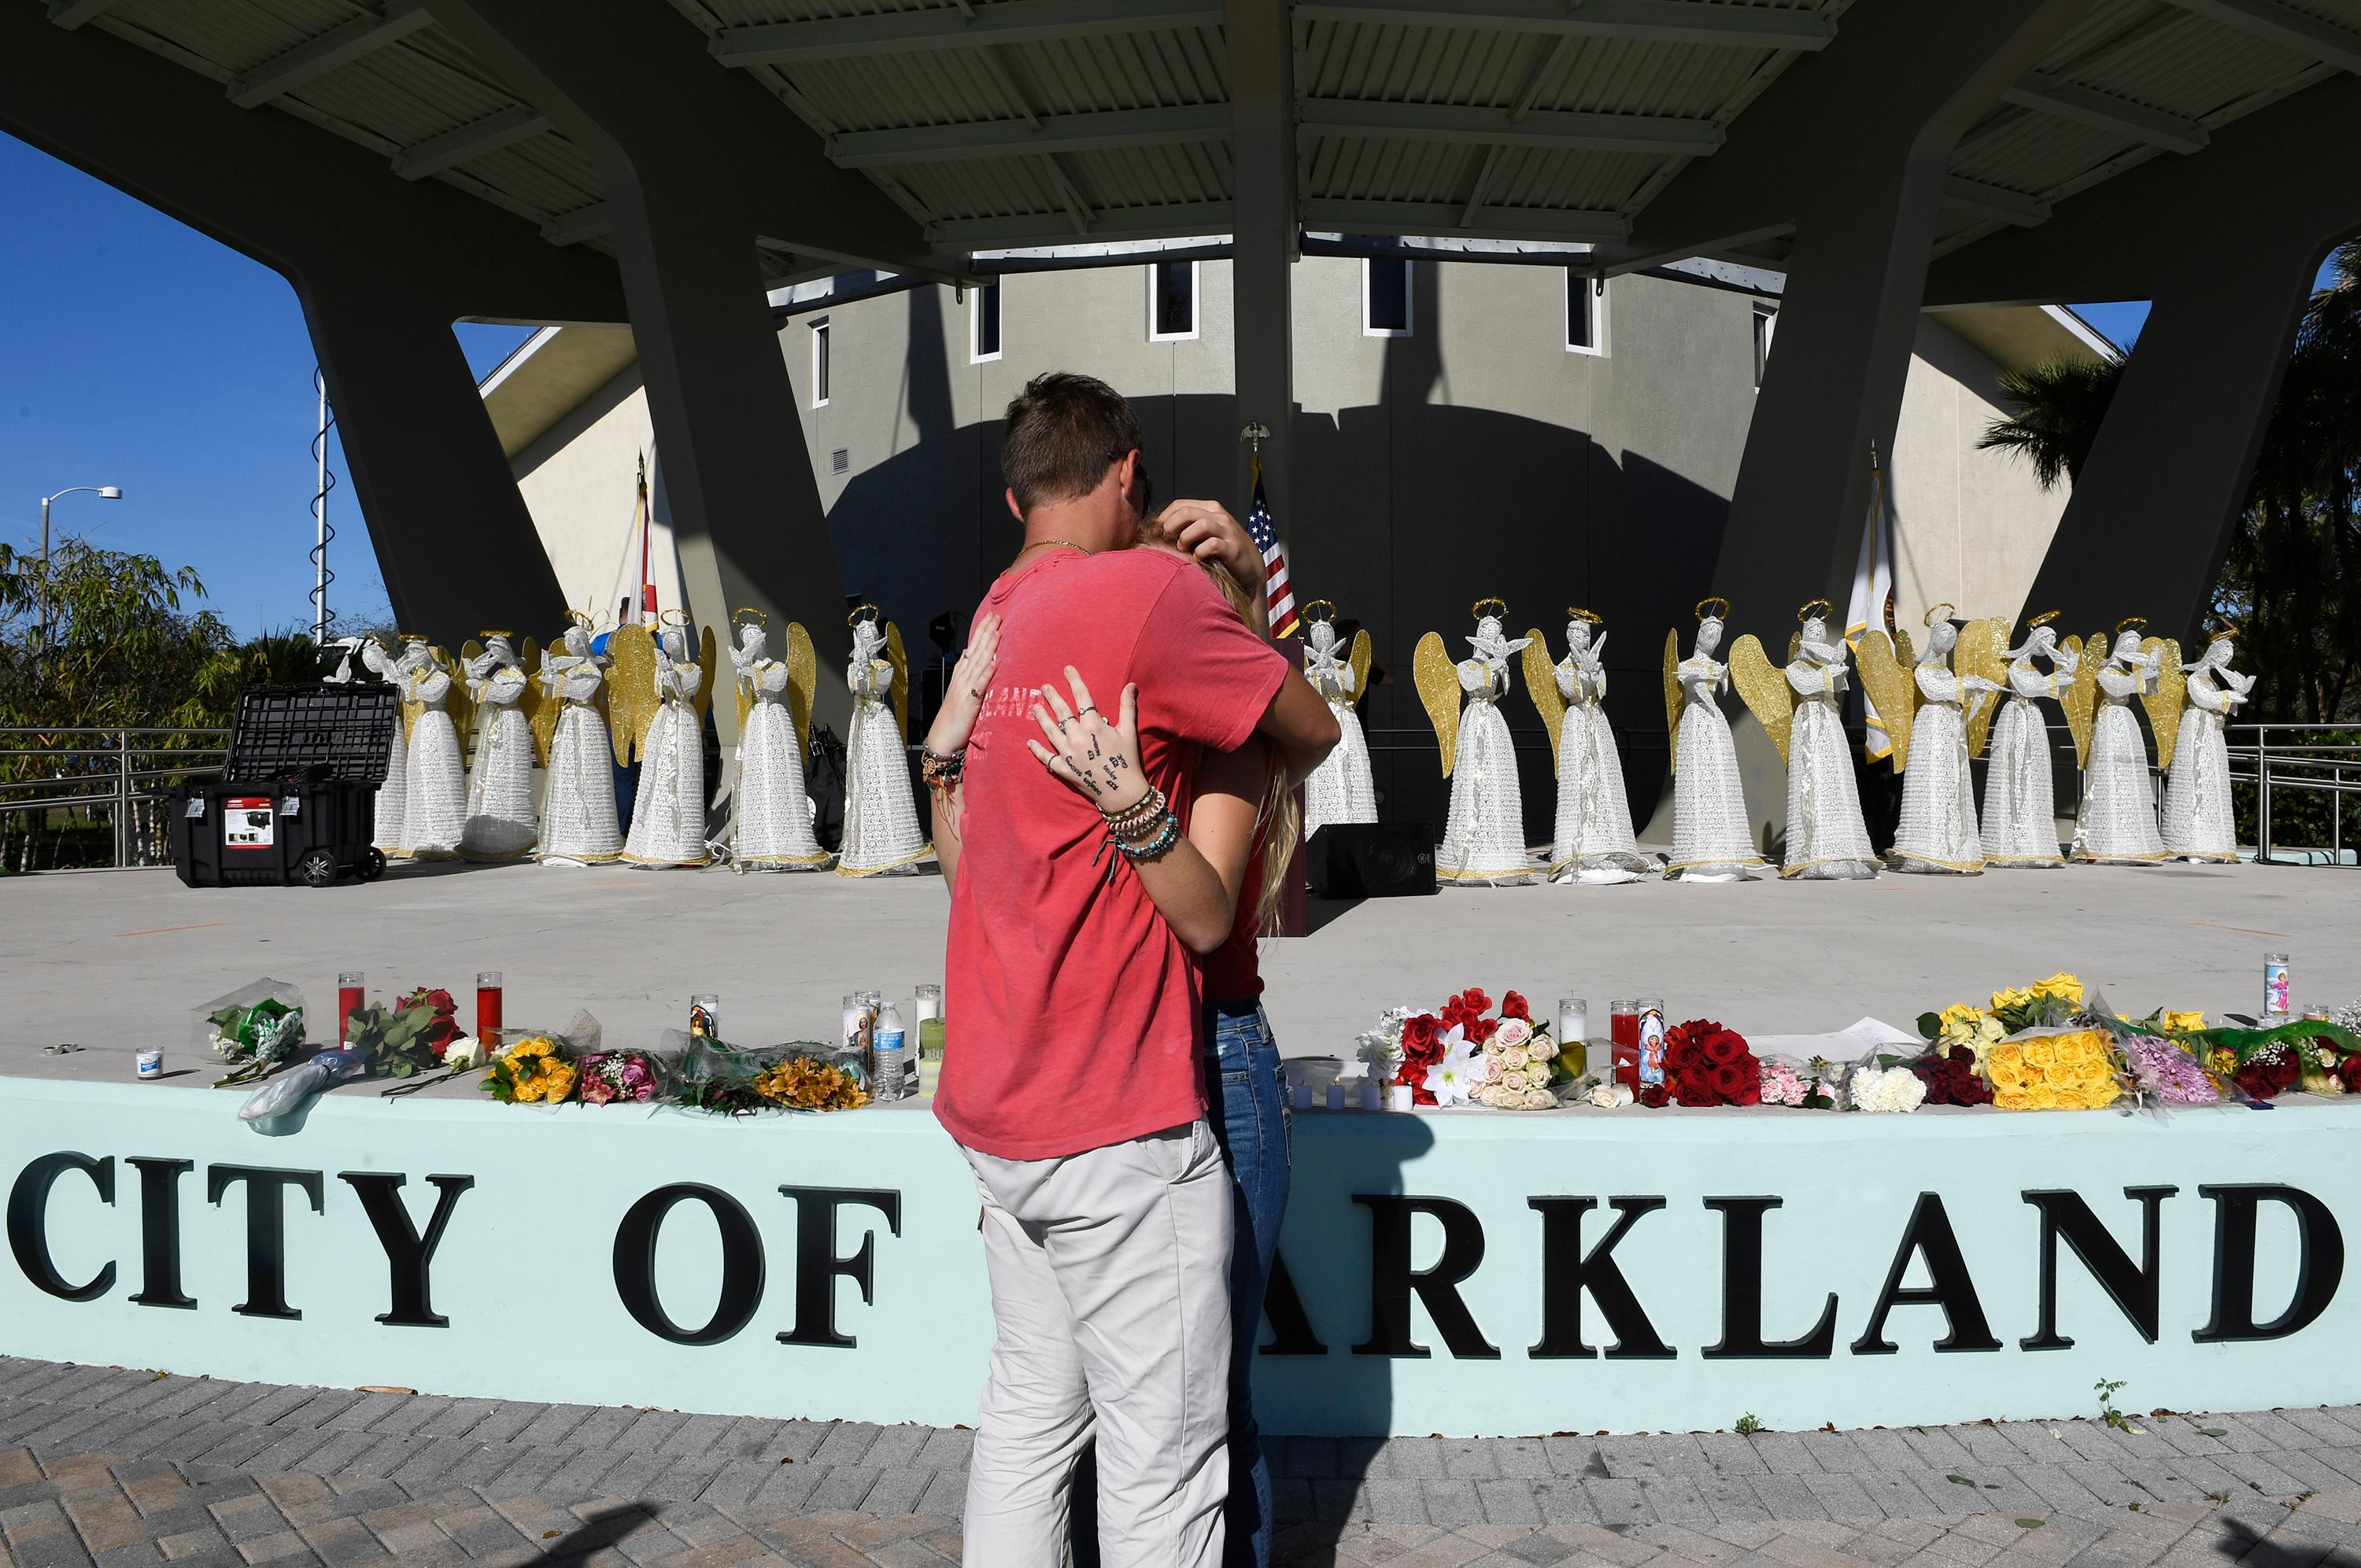 Zack King, left, comforts friend Mychal Bradley in front of 17 angels representing those who died in Wednesday's shooting at Marjory Stoneman Douglas High School Thursday, Feb. 15, 2018, in Parkland, Fla. The teenager accused of using a semi-automatic rifle to kill more than a dozen people and injuring others at a Florida high school confessed to carrying out one of the nation's deadliest school shootings and concealing extra ammunition in his backpack, according to a sheriff's department report released Thursday. (Taimy Alvarez/South Florida Sun-Sentinel via AP)